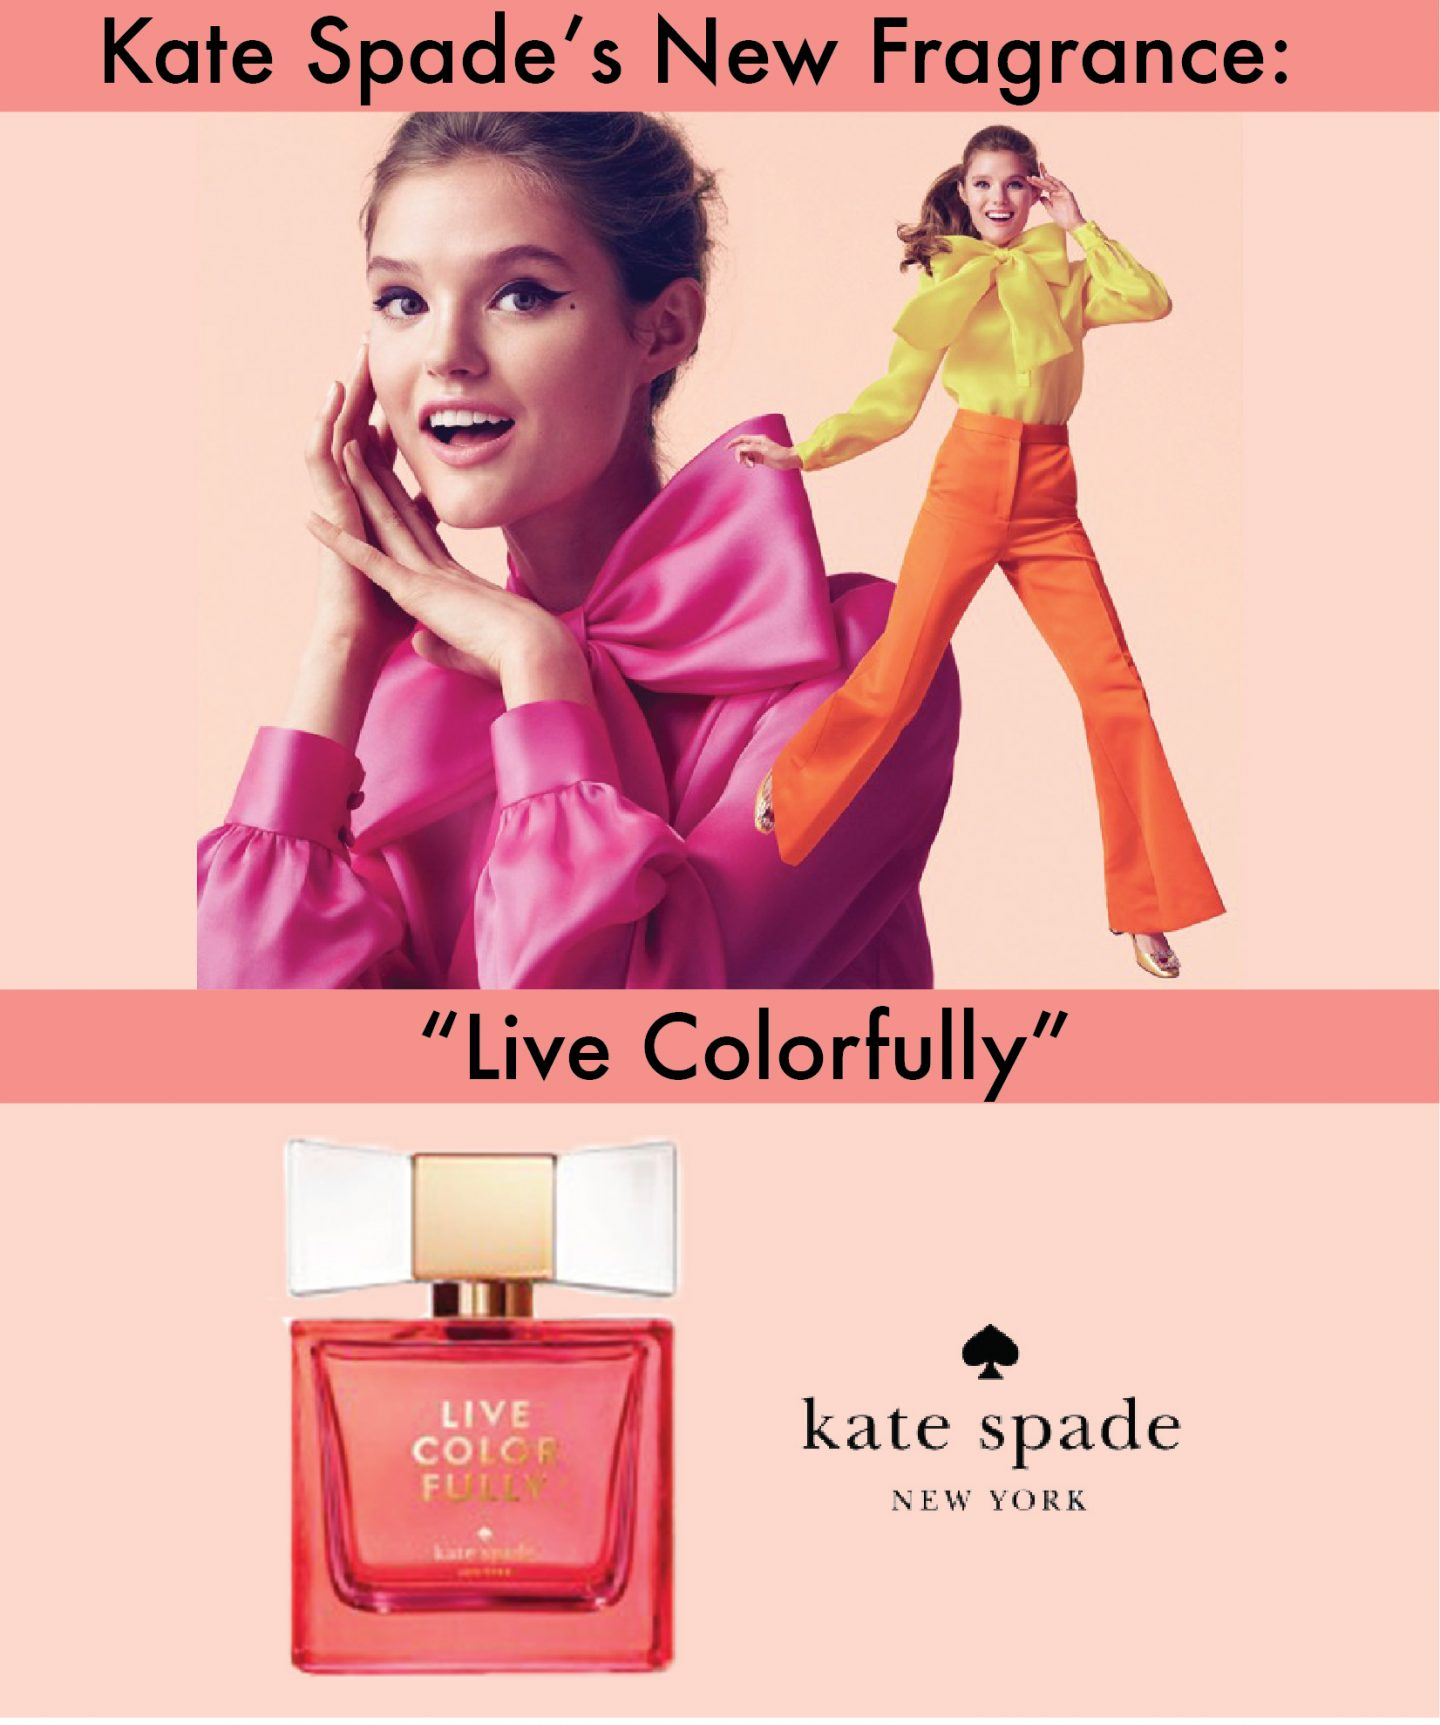 """Kate Spade's New Fragrance: """"Live Colorfully"""""""